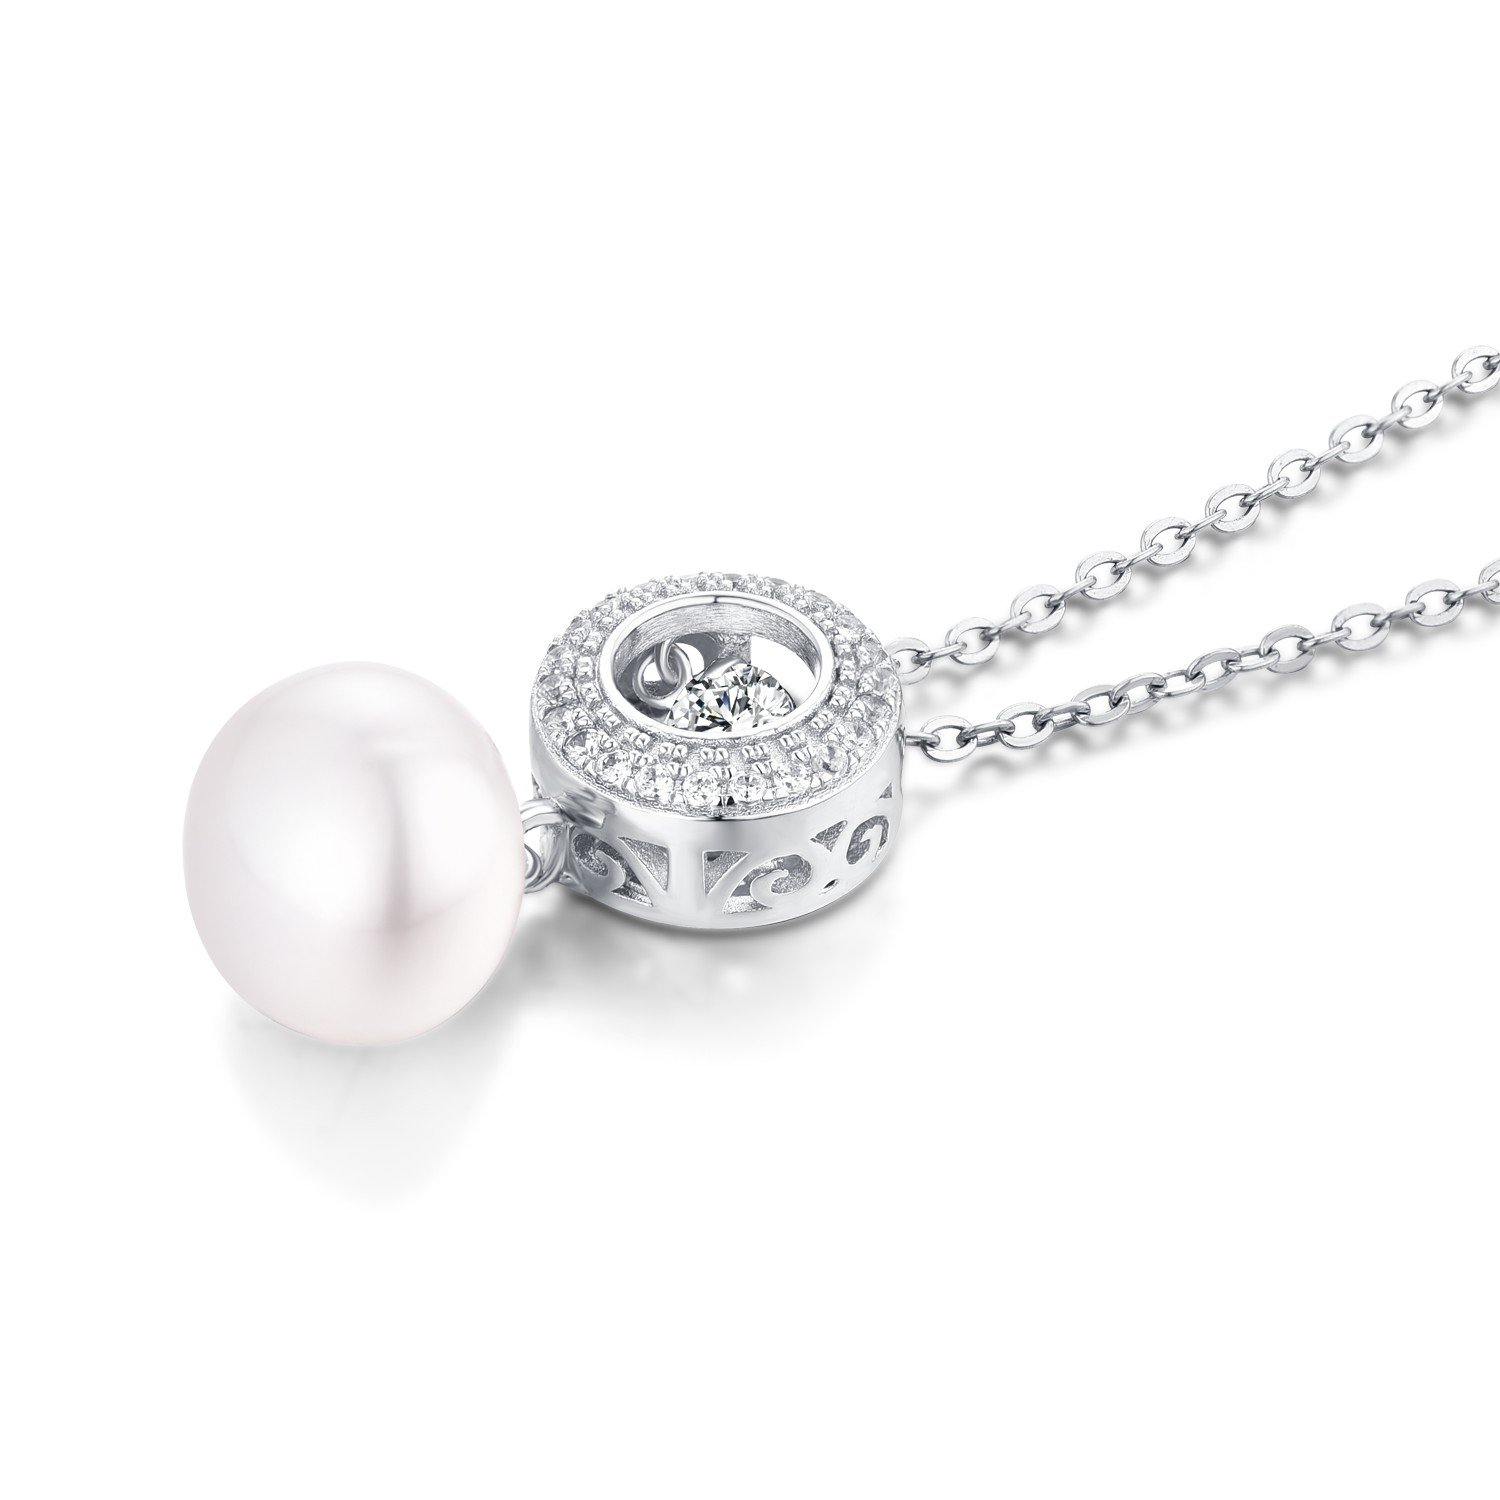 YL Sterling Silver Dancing Diamond CZ 10mm Freshwater Cultured Pearl Filigree Pendant Necklace 18